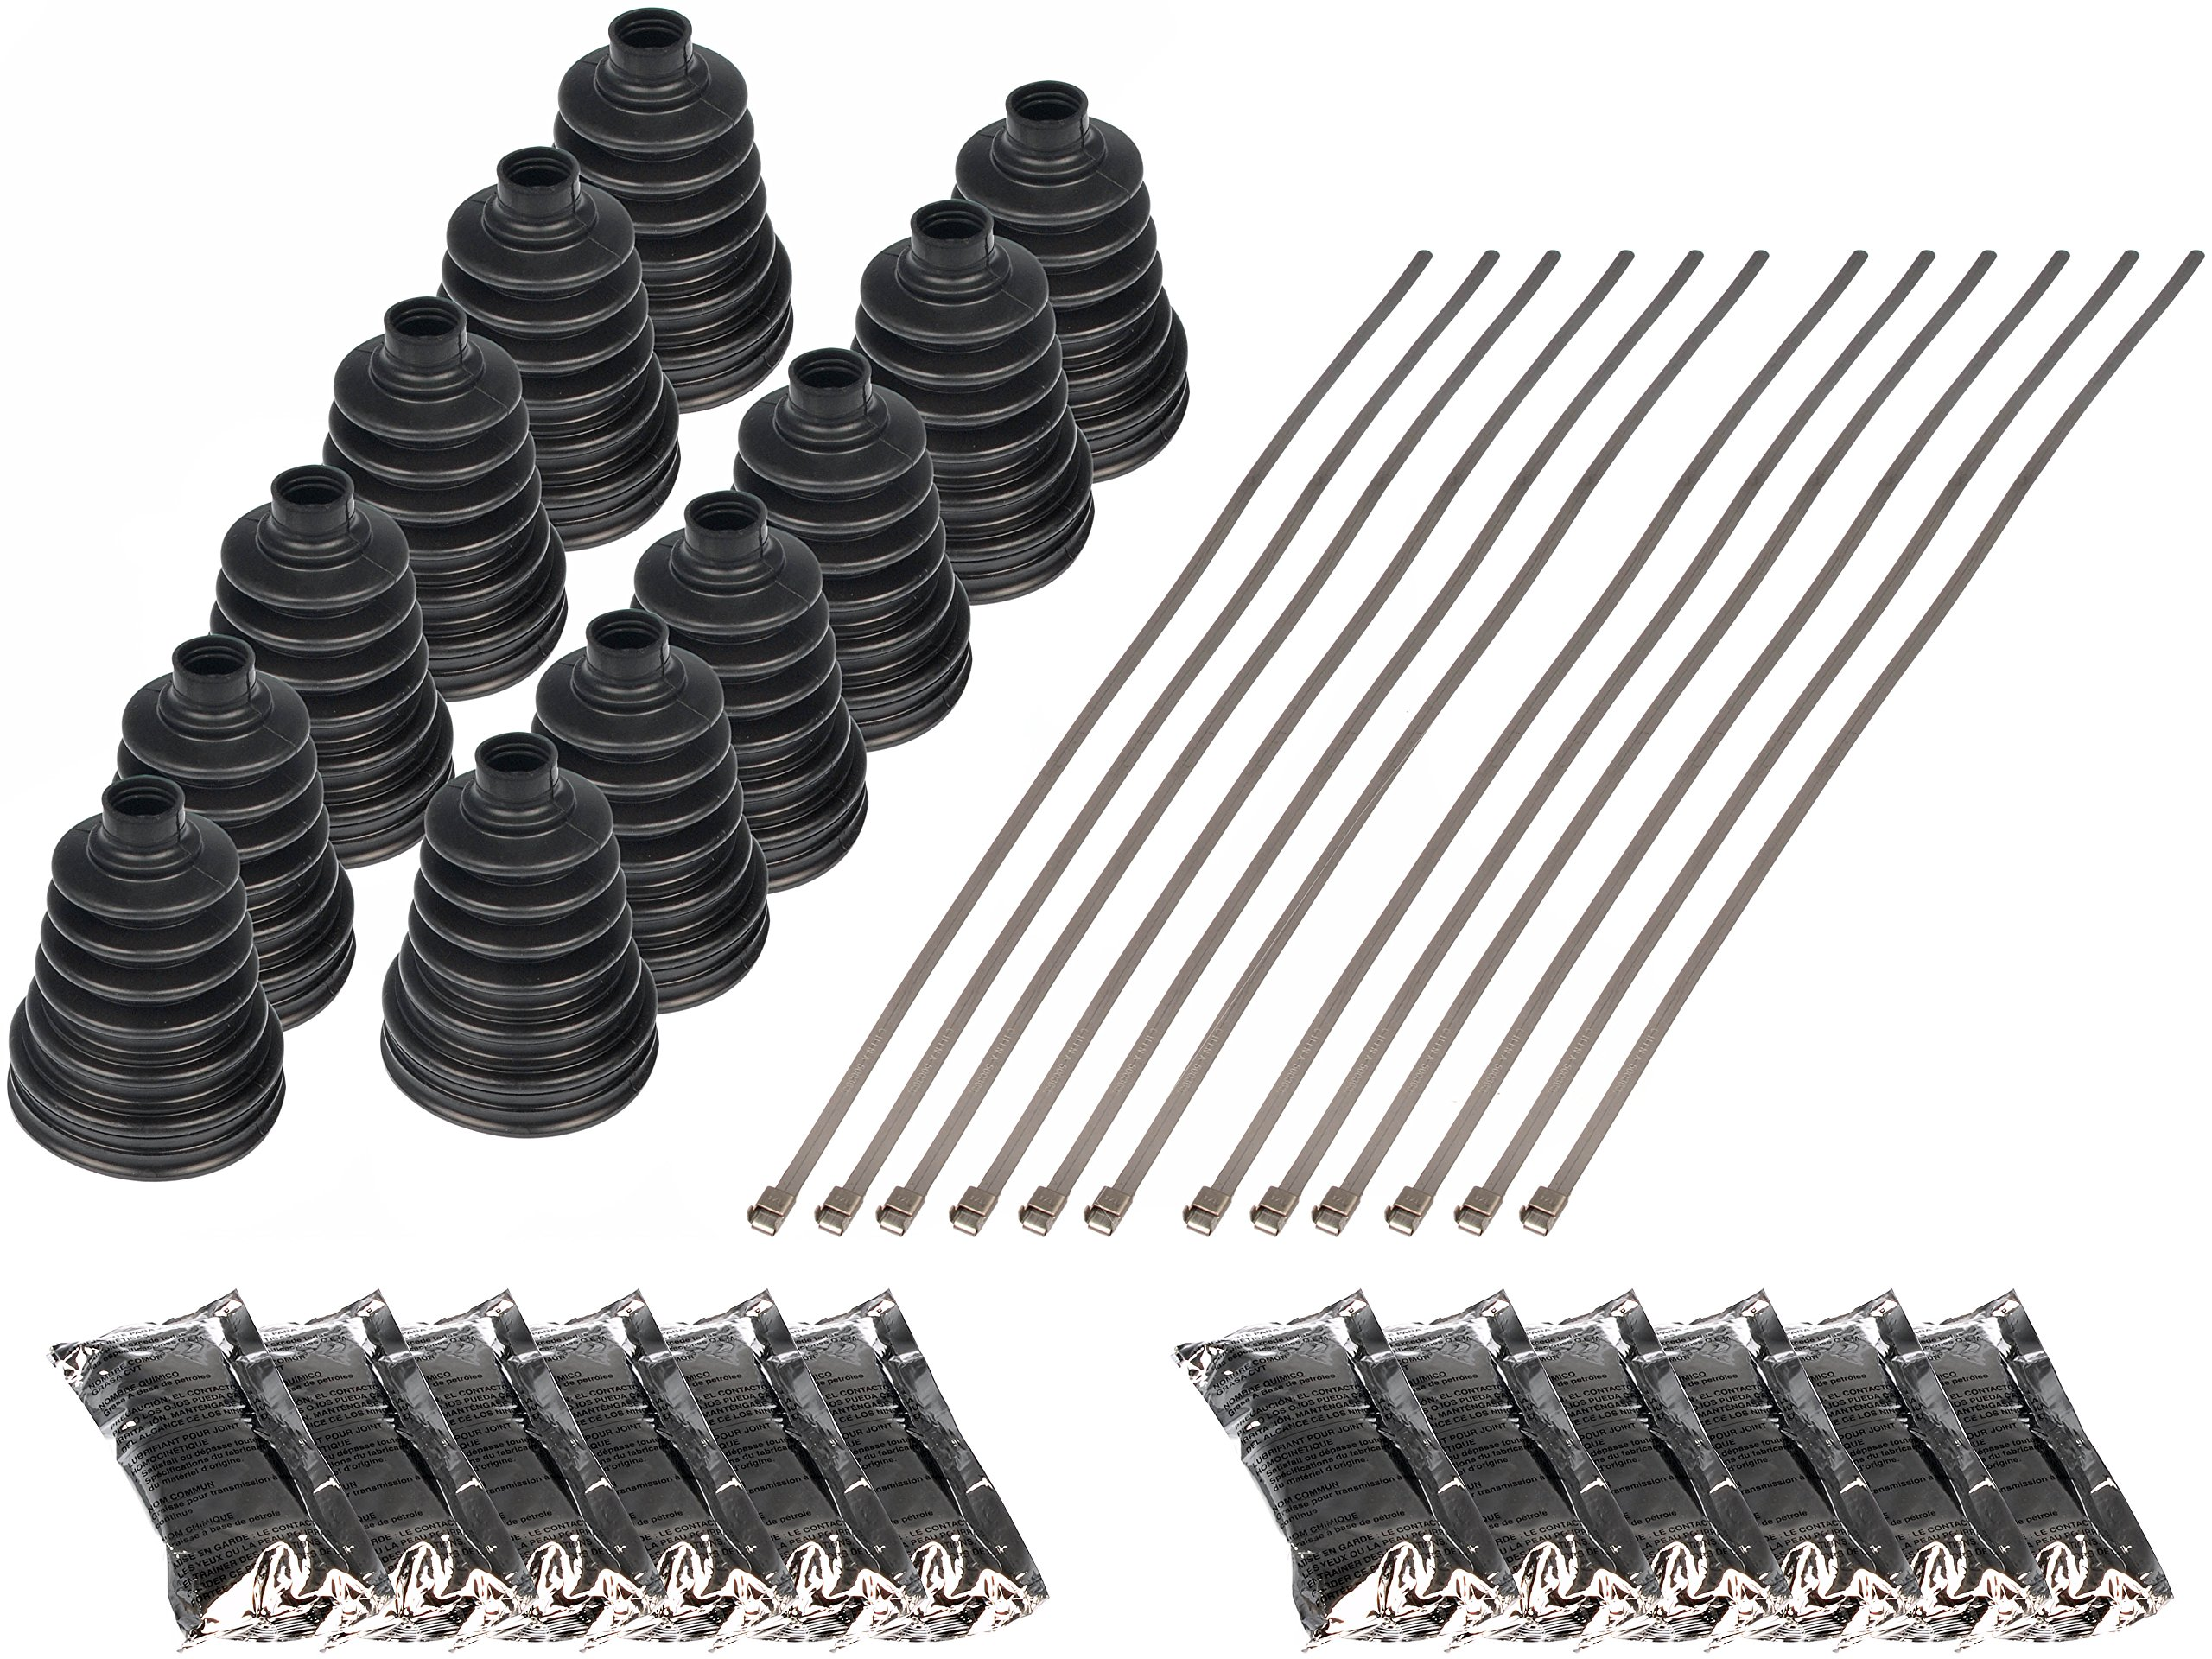 Dorman 614-012 HELP! Universal Fit CV Boot Kit - Pack of 12